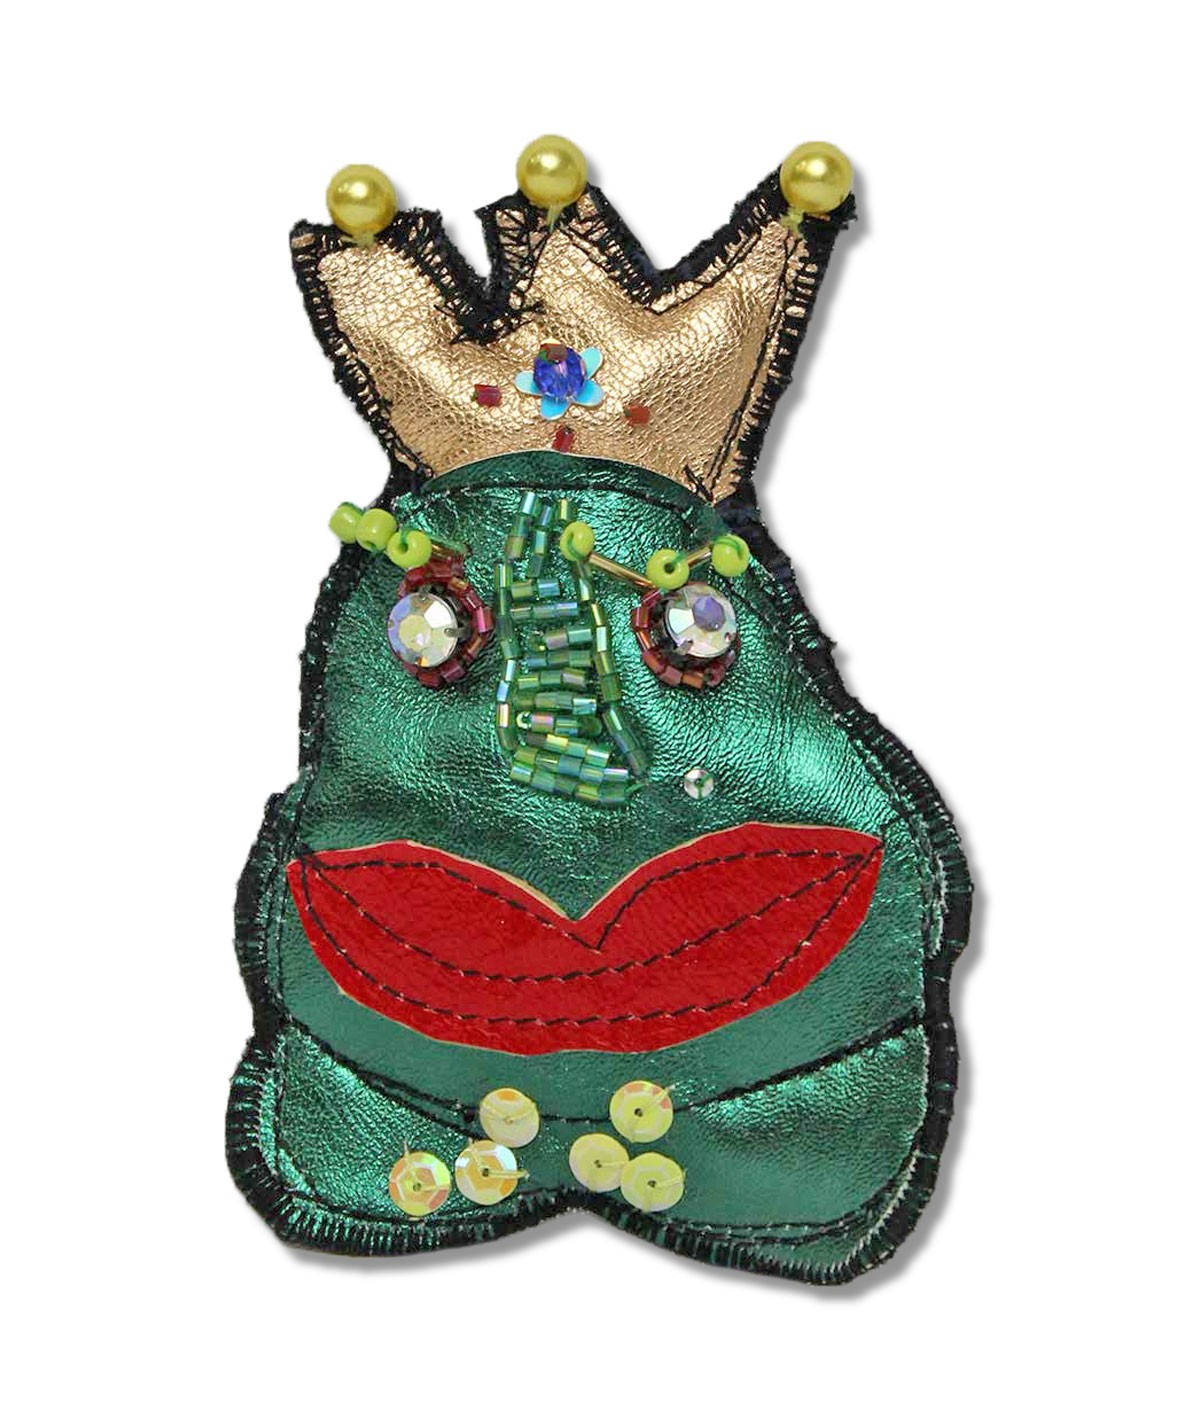 Croak - leather brooch